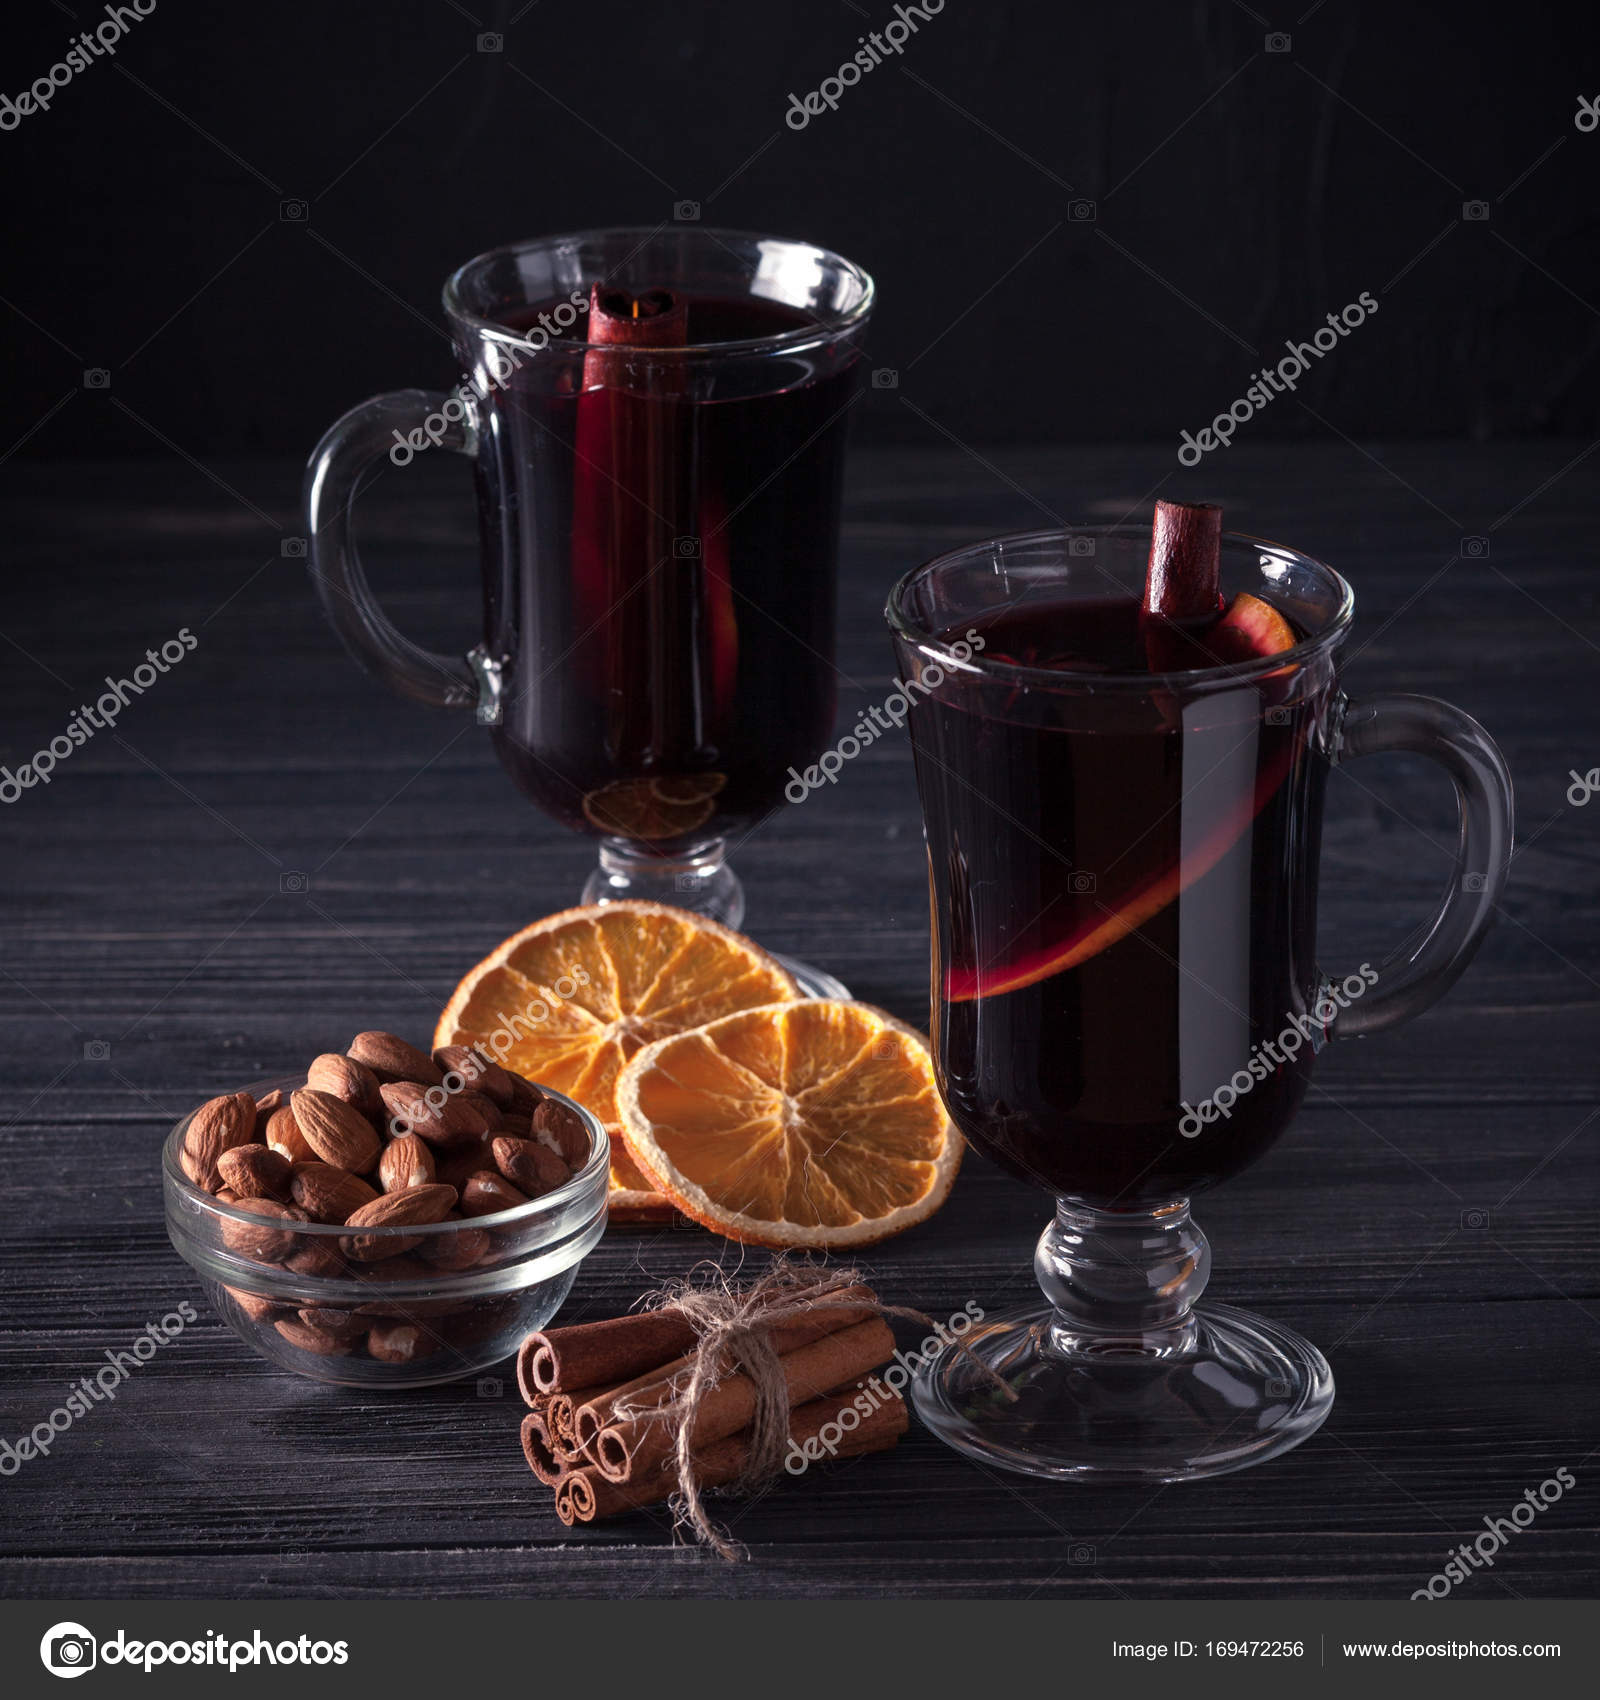 Mulled Wine Banner Glasses With Hot Red Wine And Spices On Dark Background Modern Dark Mood Style Stock Photo C Rojdesign 169472256